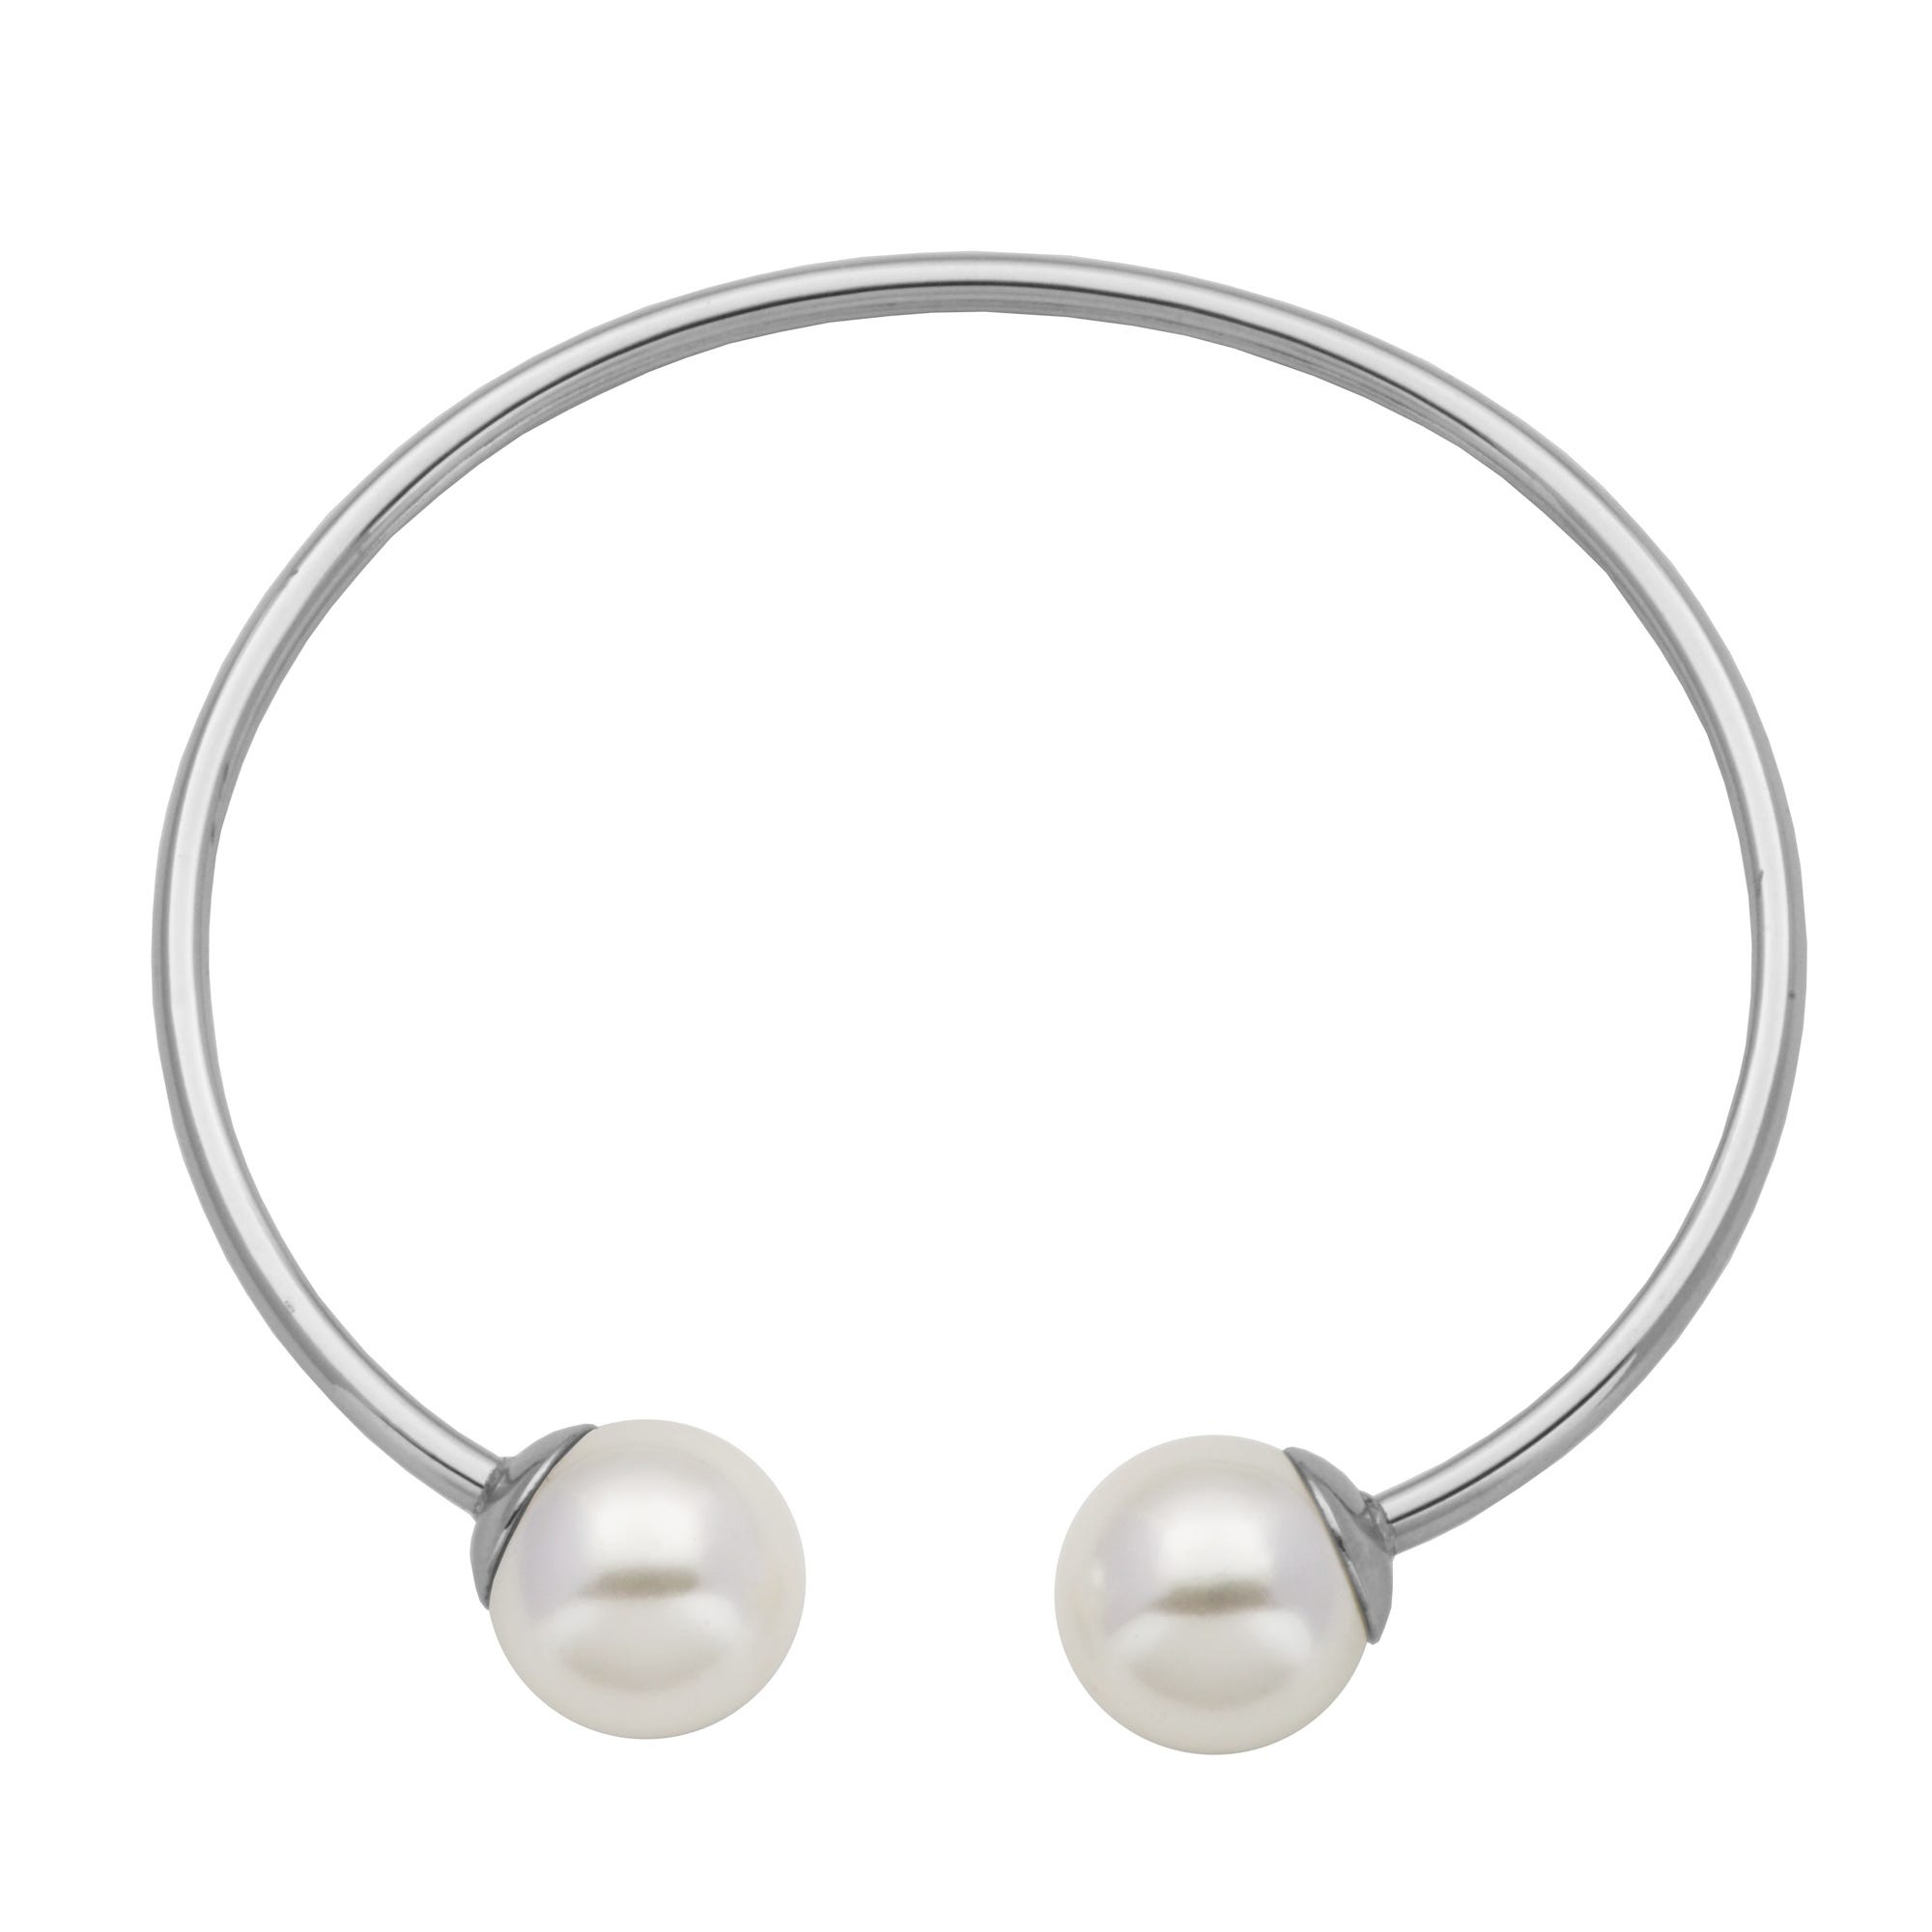 Double Pearl Open Flexible Bangle Bracelet